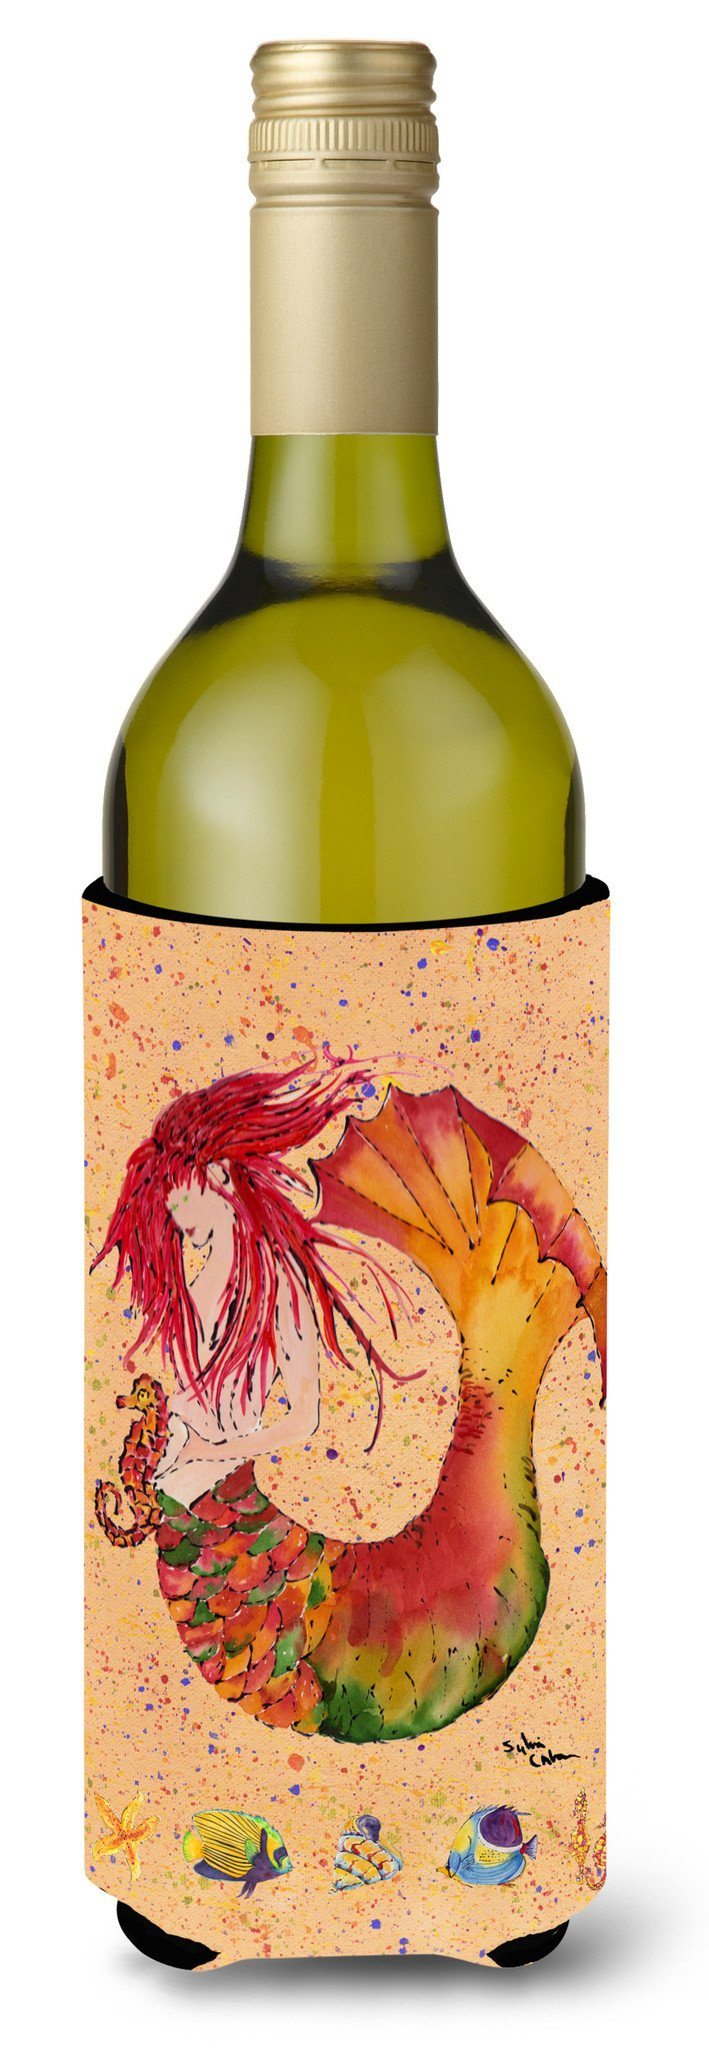 Buy this Red Headed Ginger Mermaid on Coral Wine Bottle Beverage Insulator Beverage Insulator Hugger